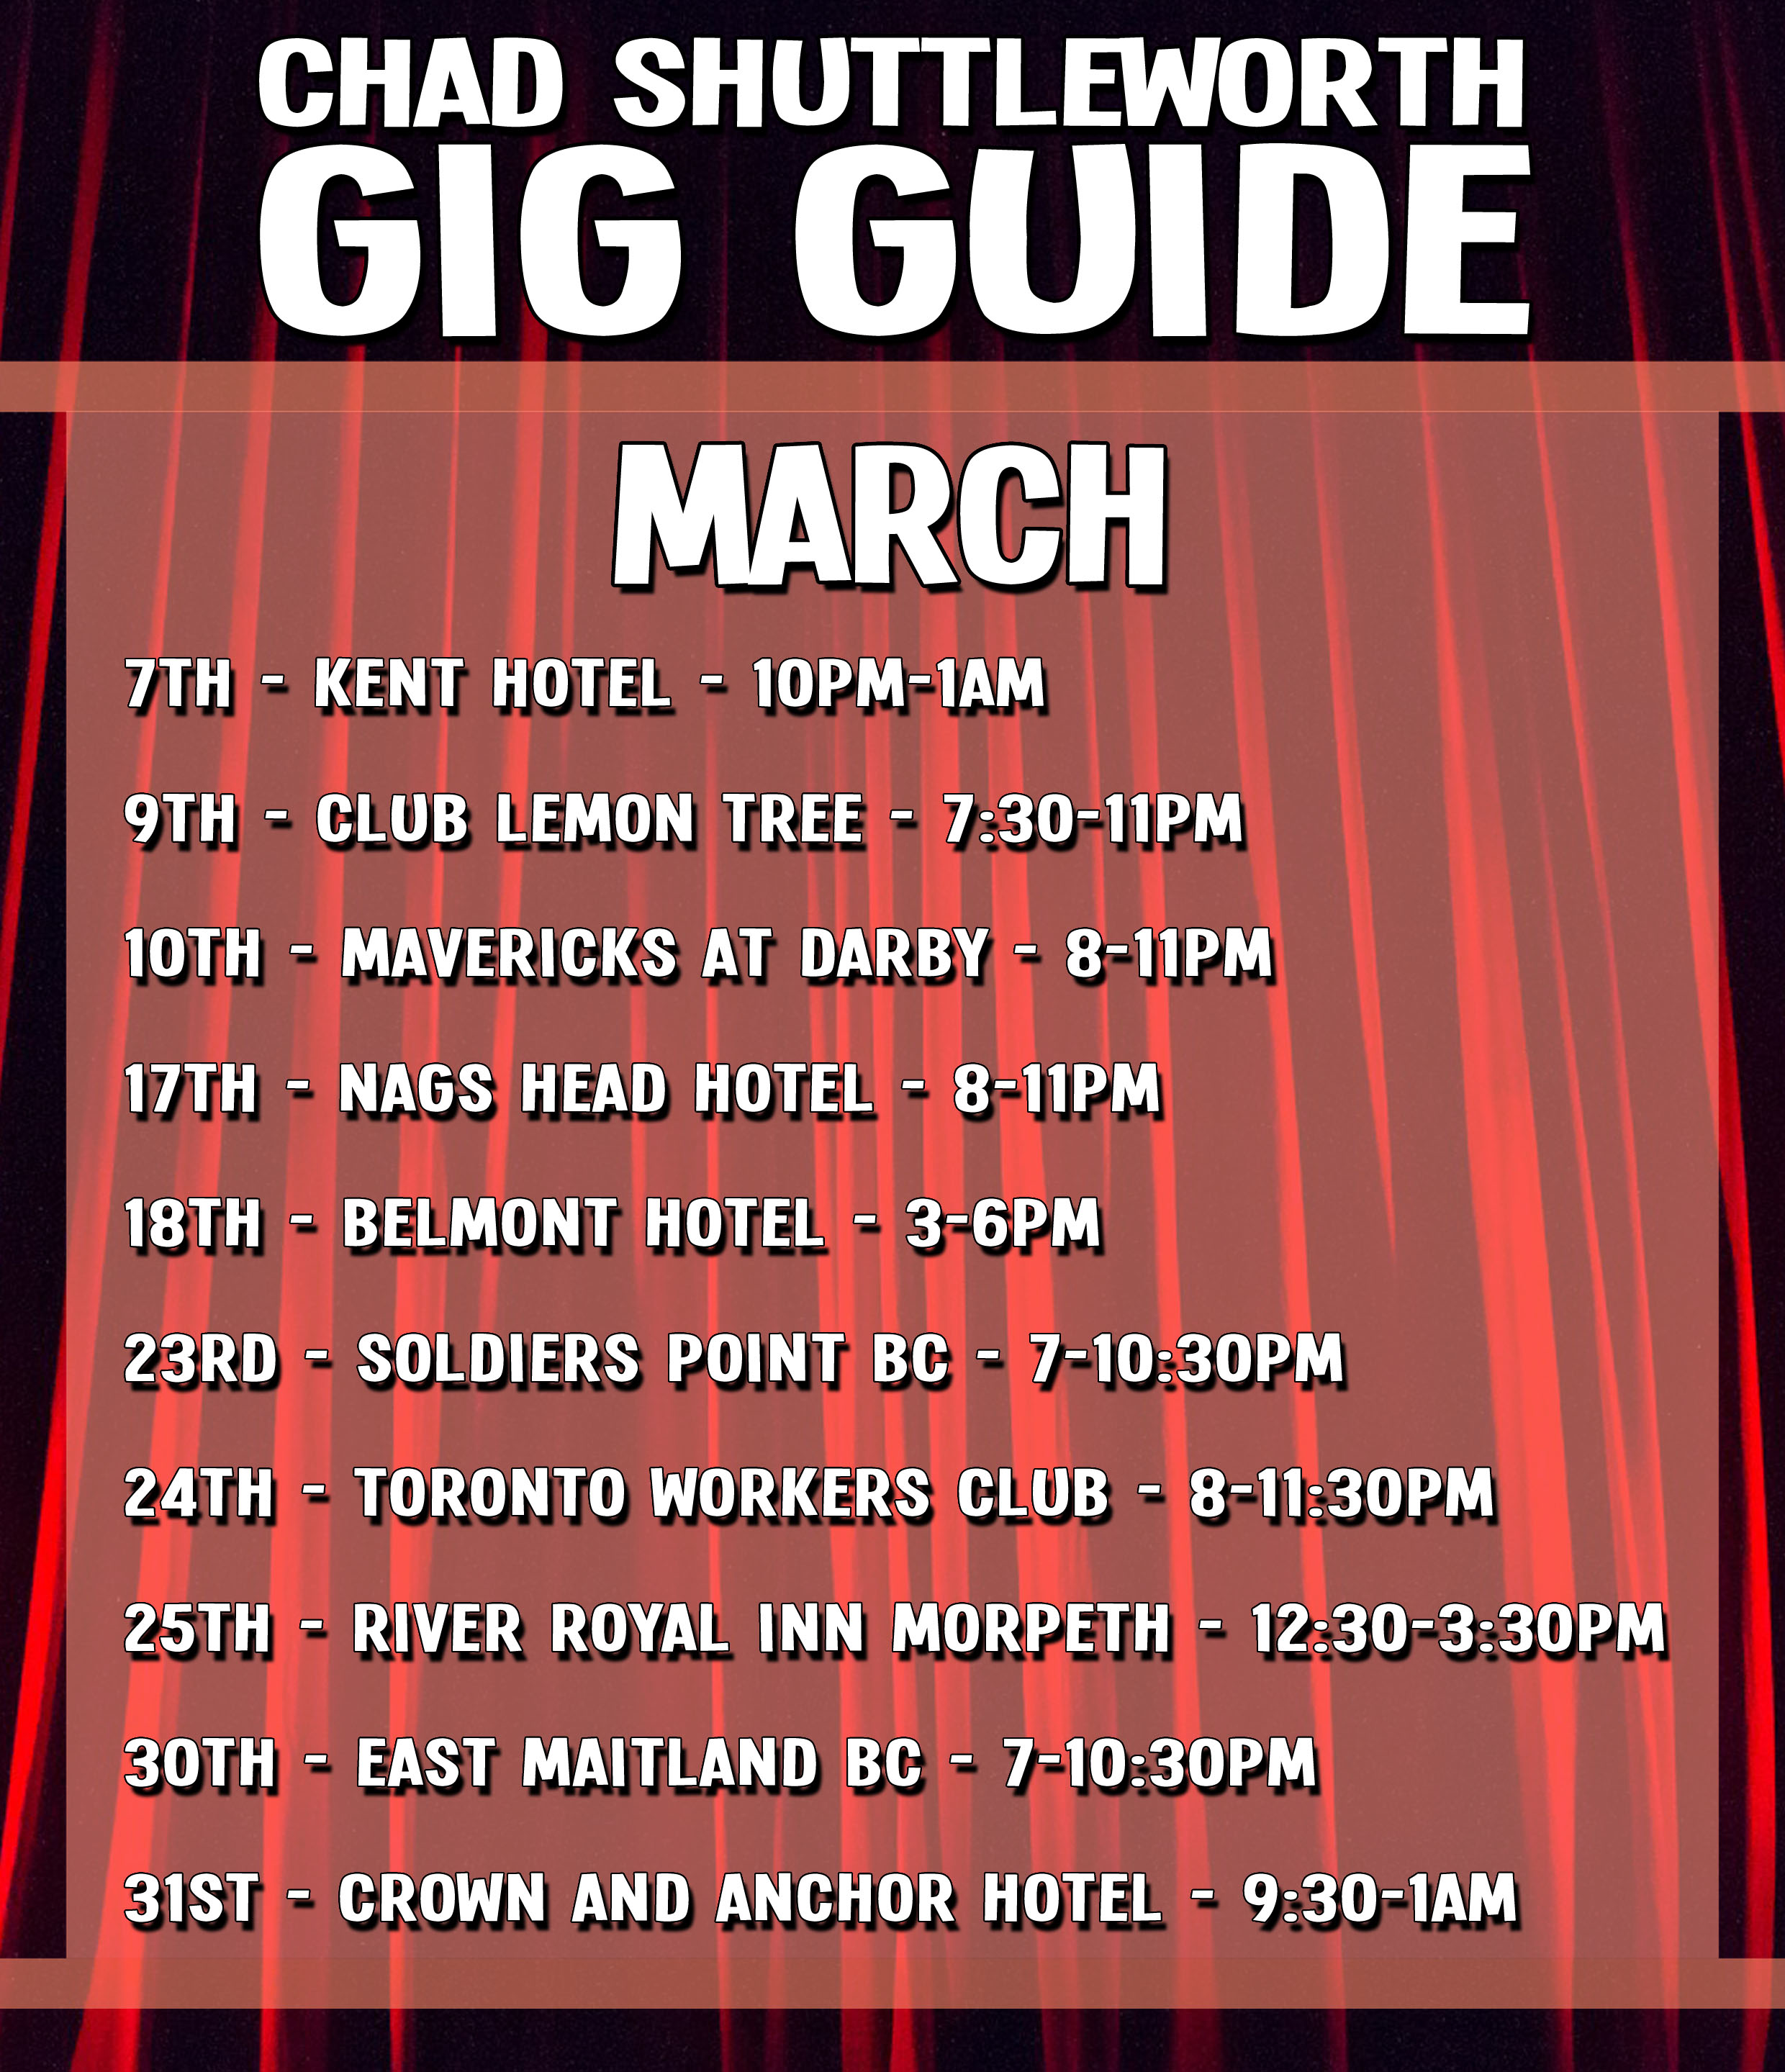 chad shuttleworth gig guide country music